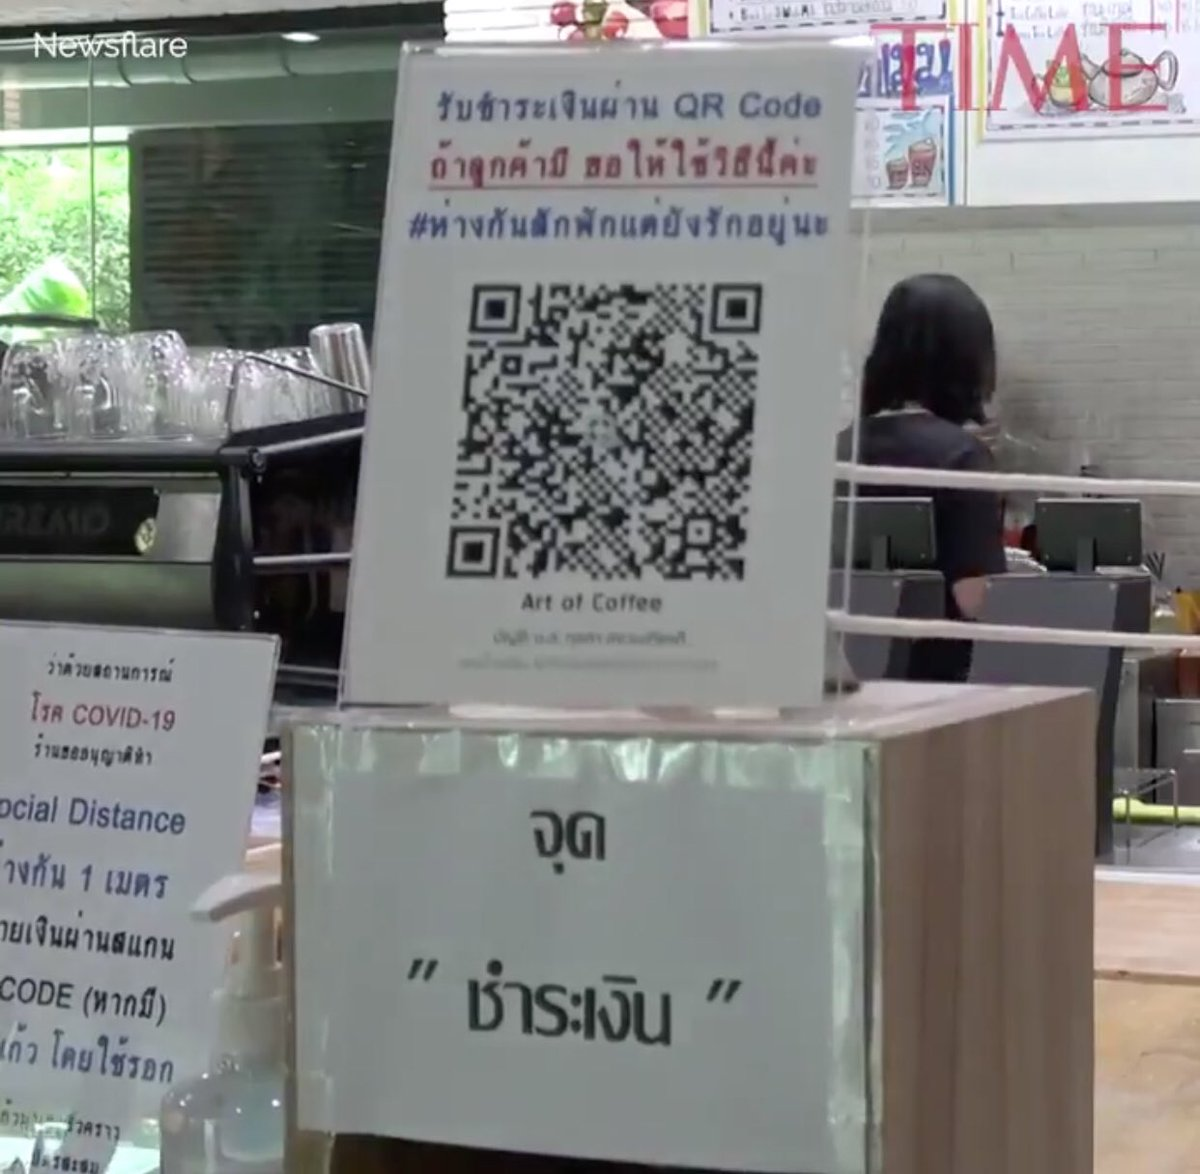 They can pay by scanning the QR code on their phone too